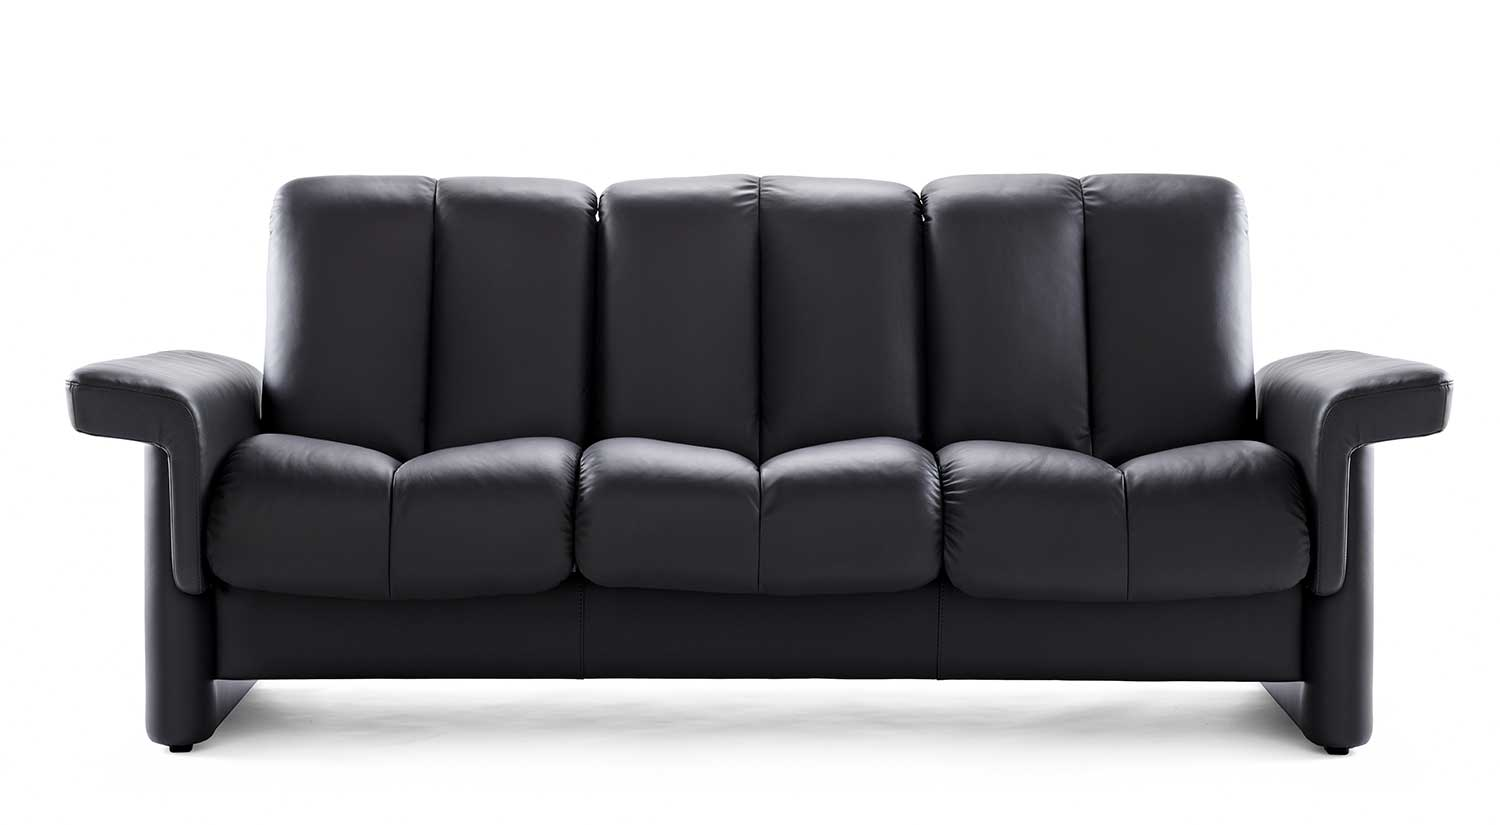 circle furniture legend stressless lowback sofa. Black Bedroom Furniture Sets. Home Design Ideas